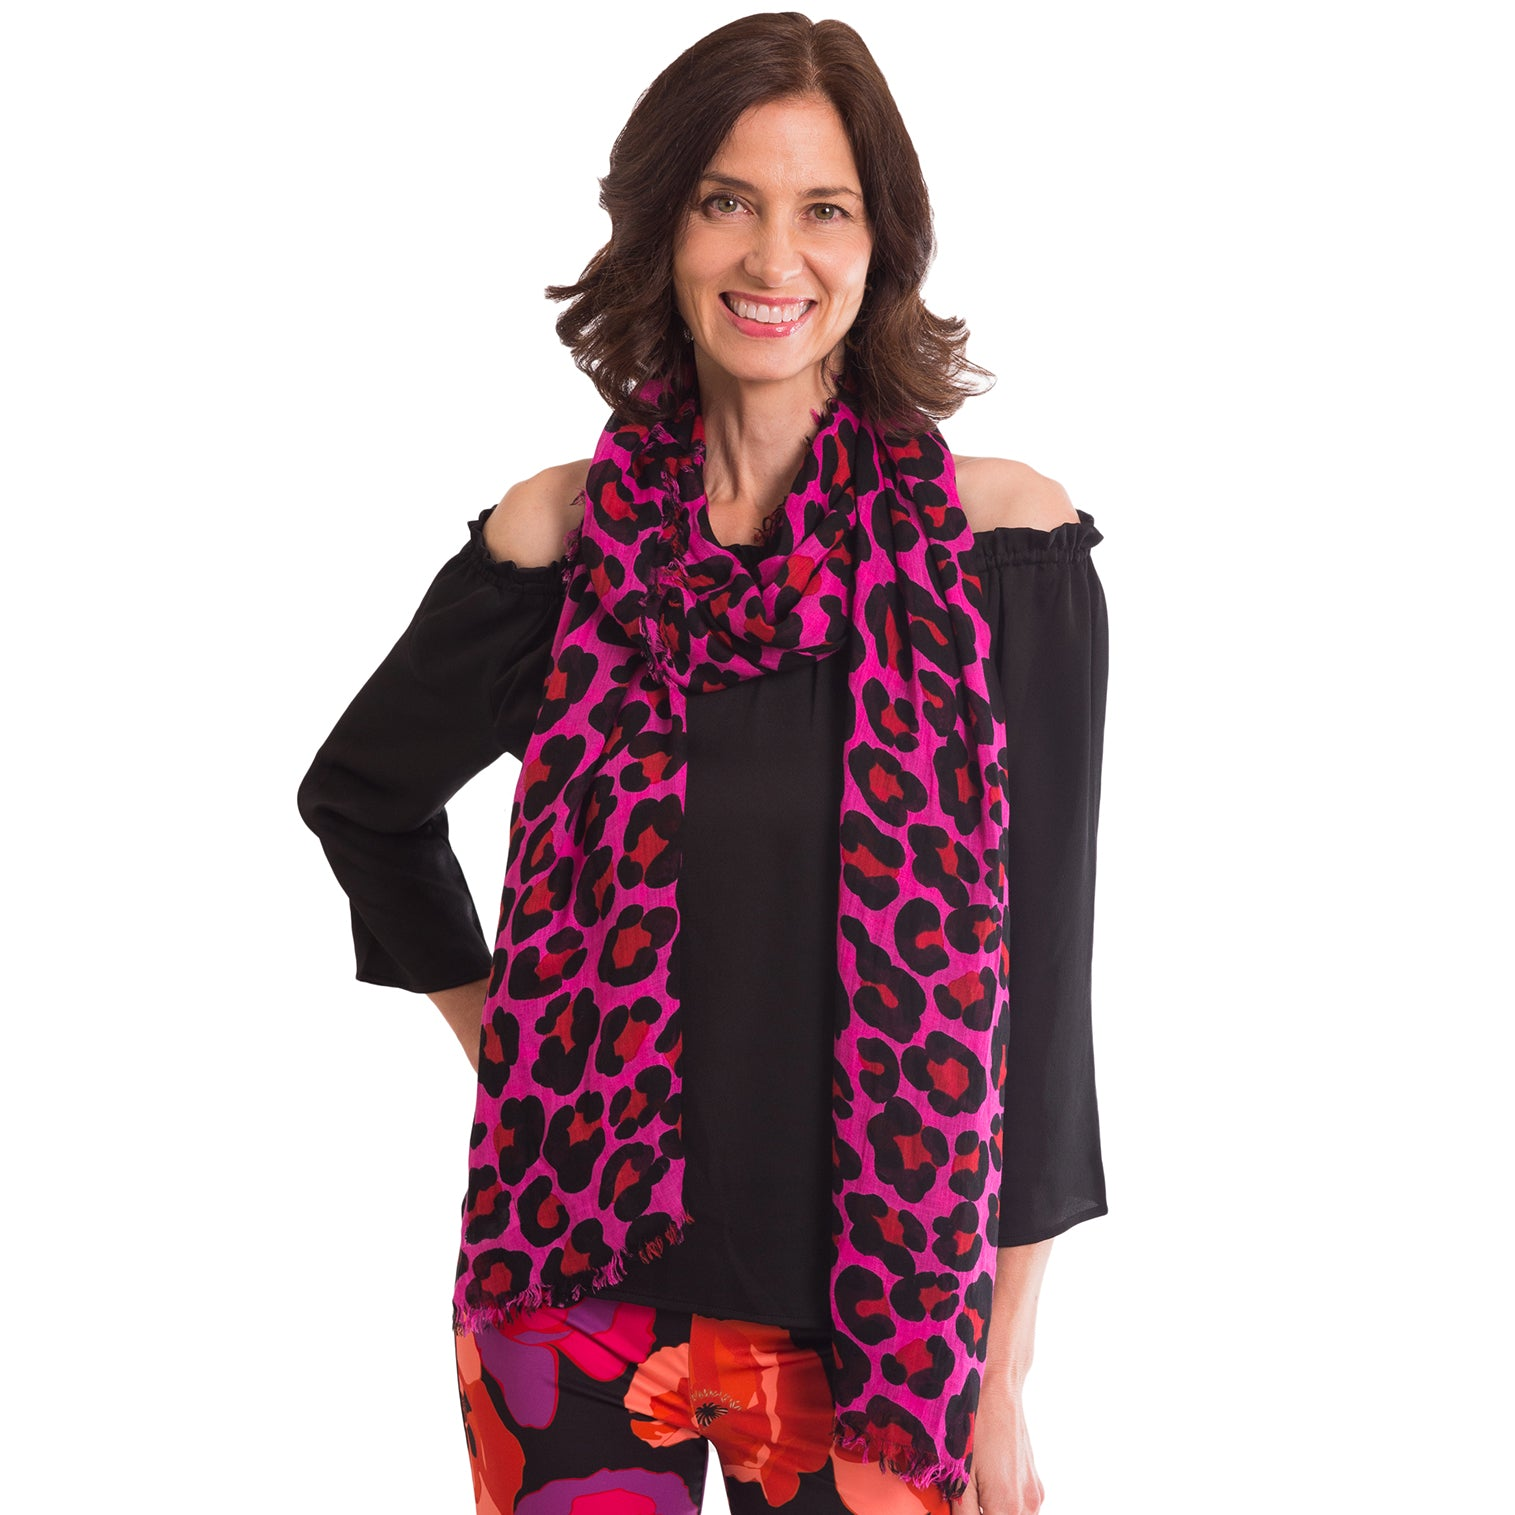 Hot Pink Leopard Print Scarf - Elizabeth Ackerman New York